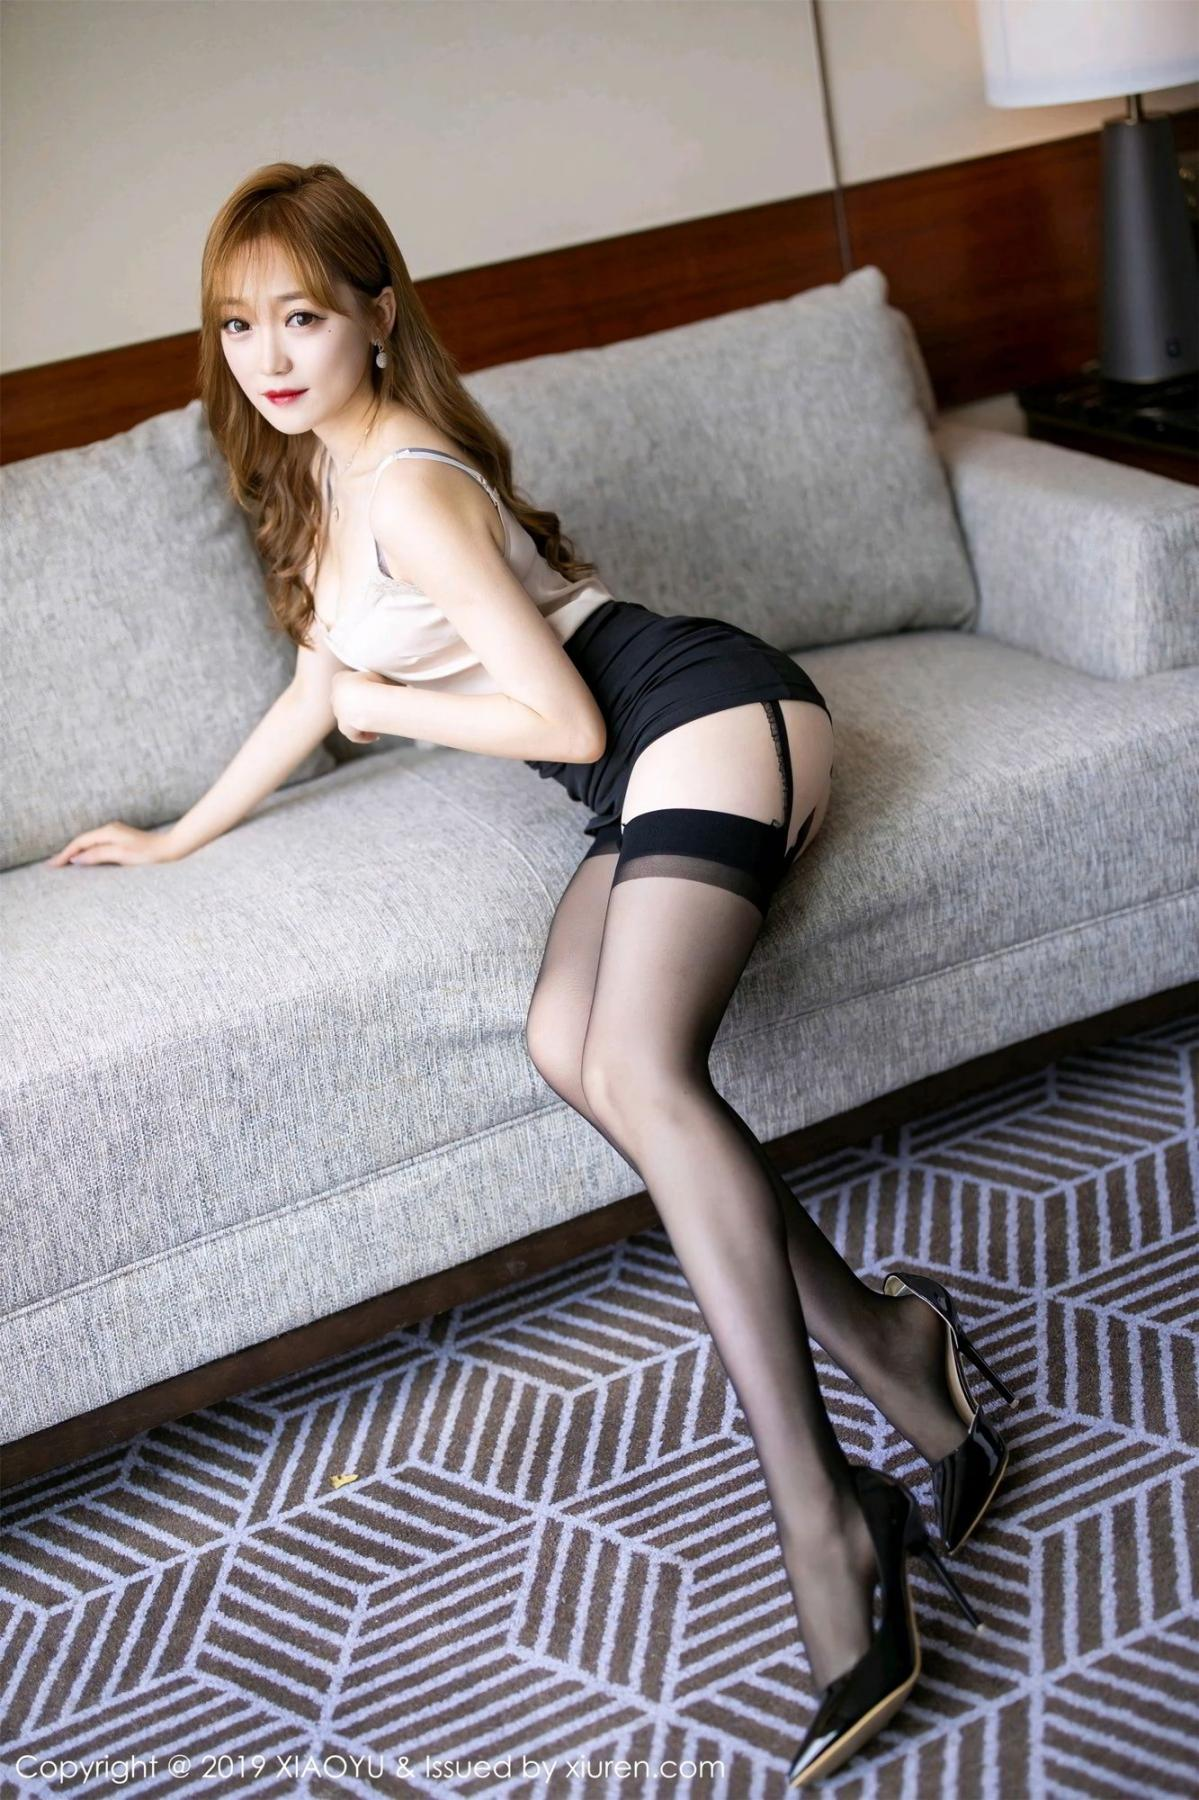 [XiaoYu] Vol.120 Yuner Claire 1P, Black Silk, Tall, XiaoYu, Yuner Claire